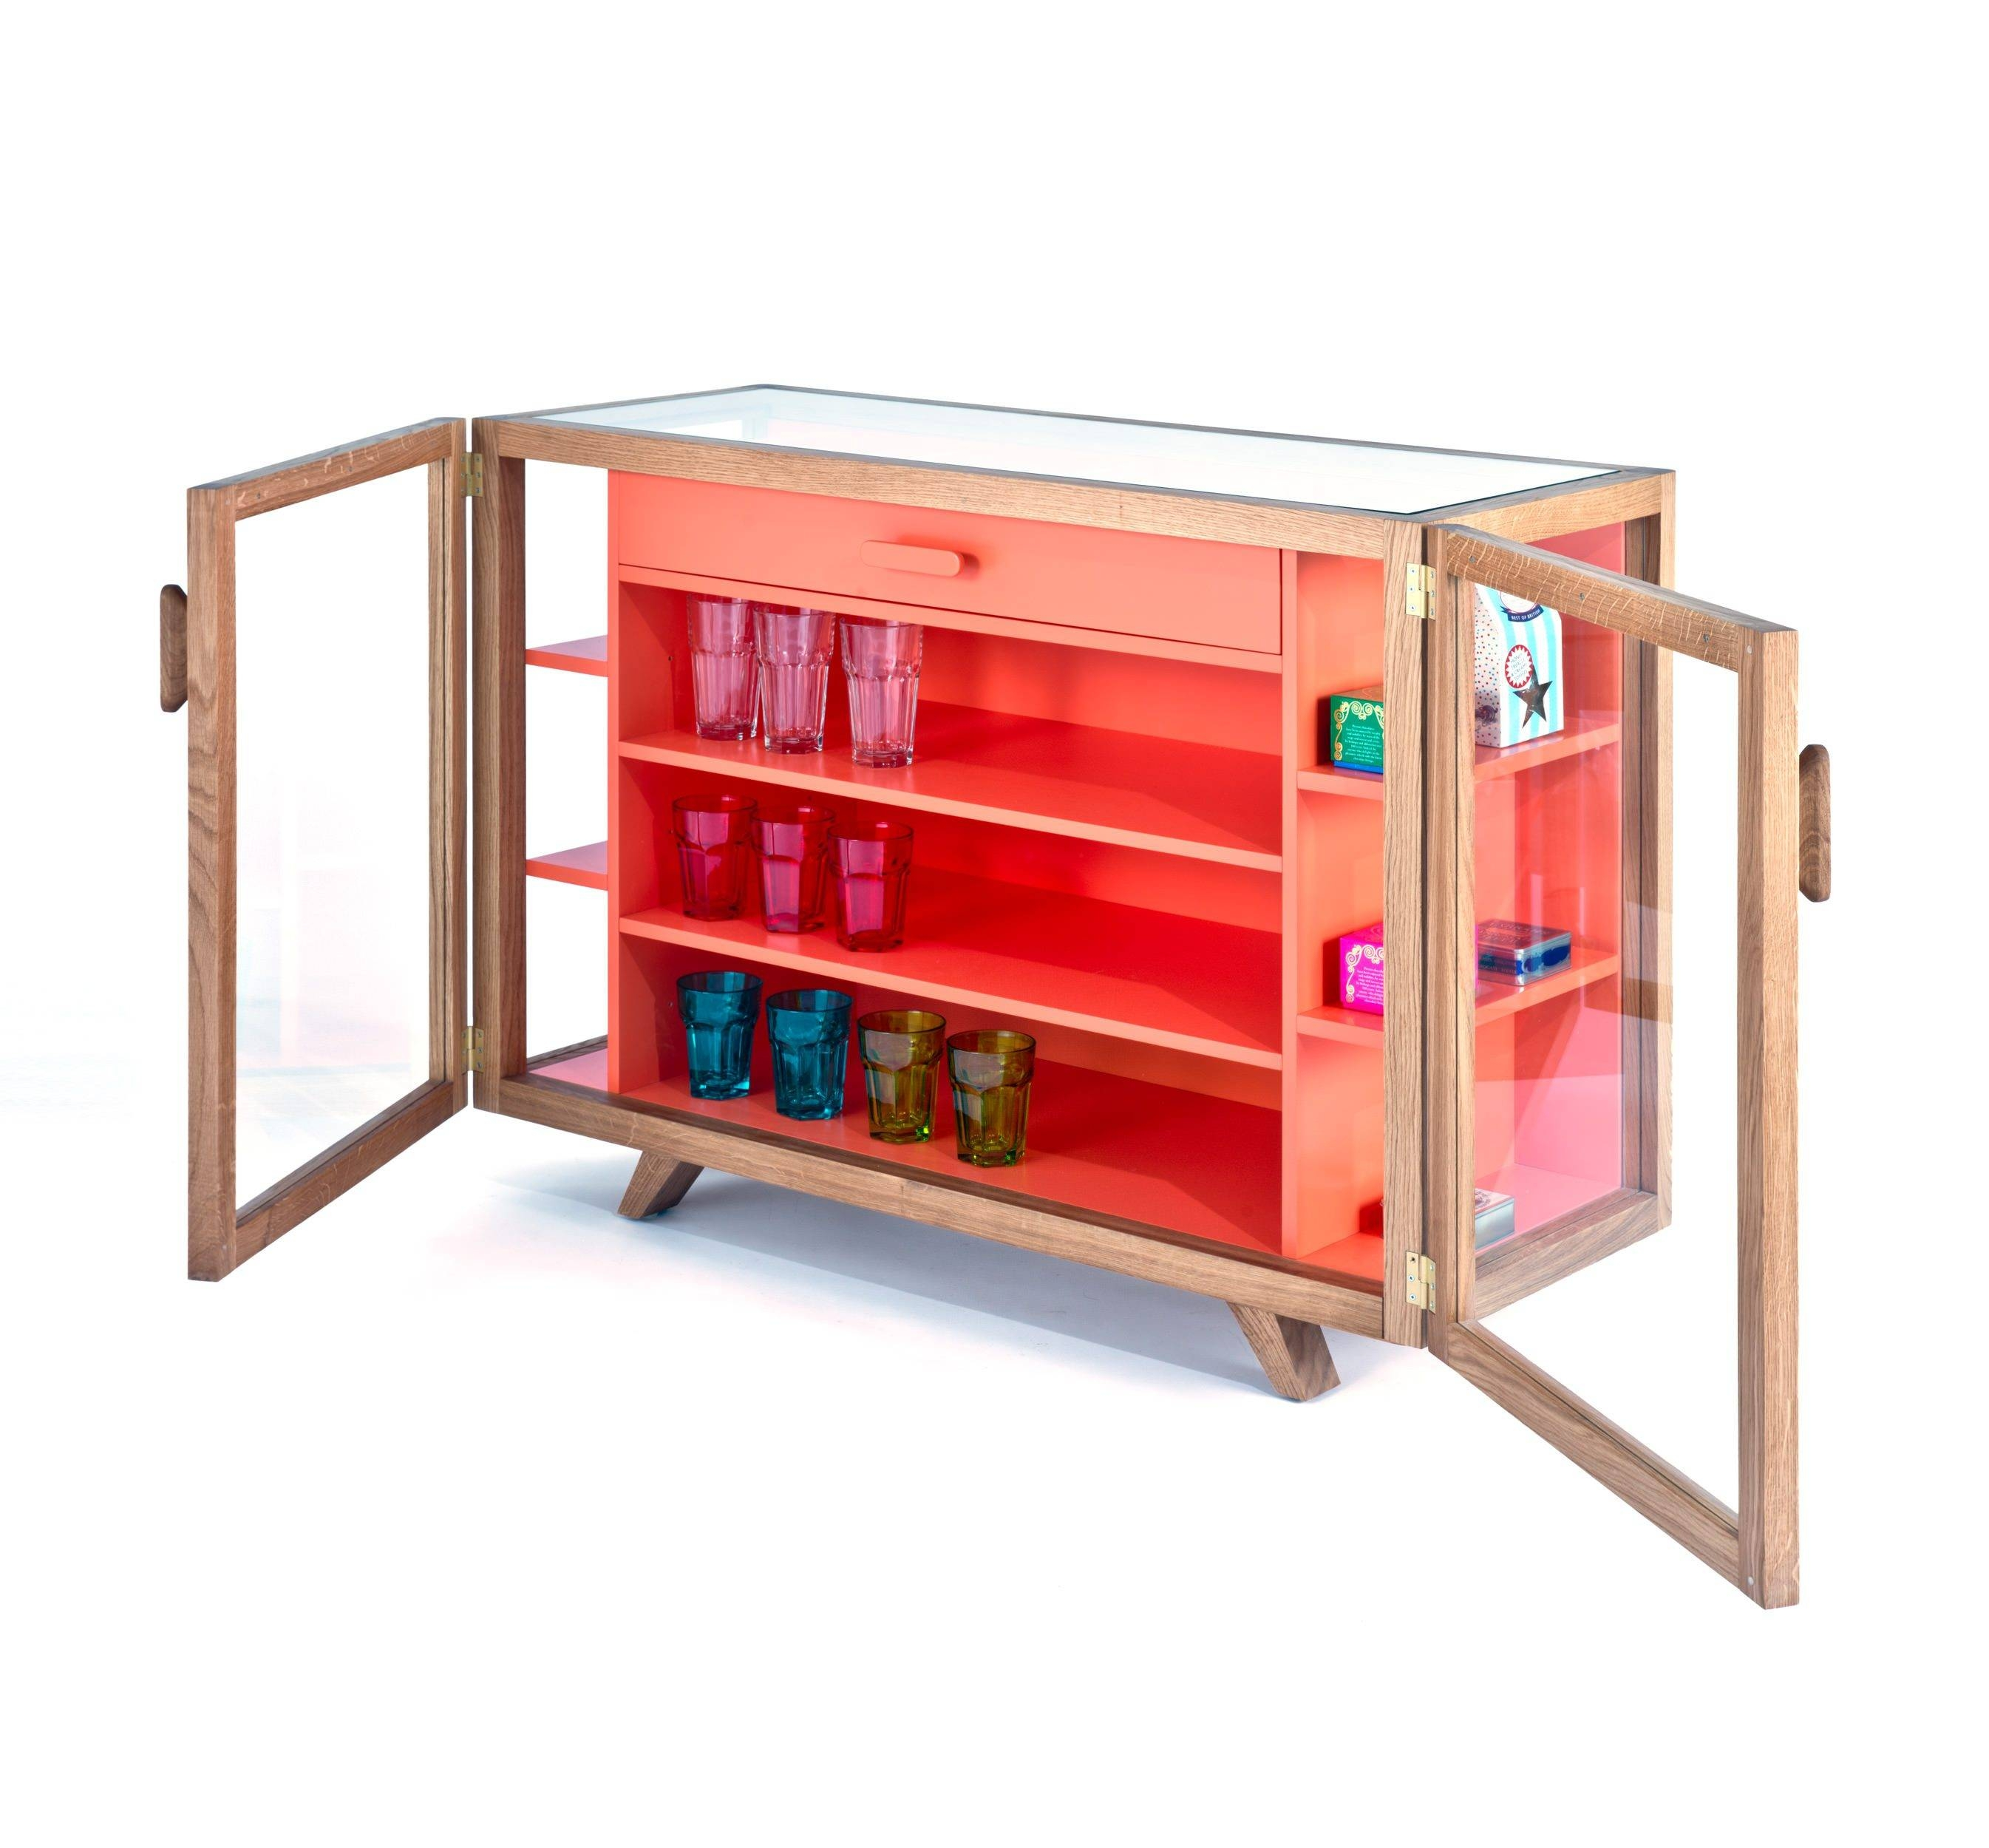 Vitrina Small Sideboardhierve | Case Furniture With Regard To Small Sideboard Cabinet (#20 of 20)